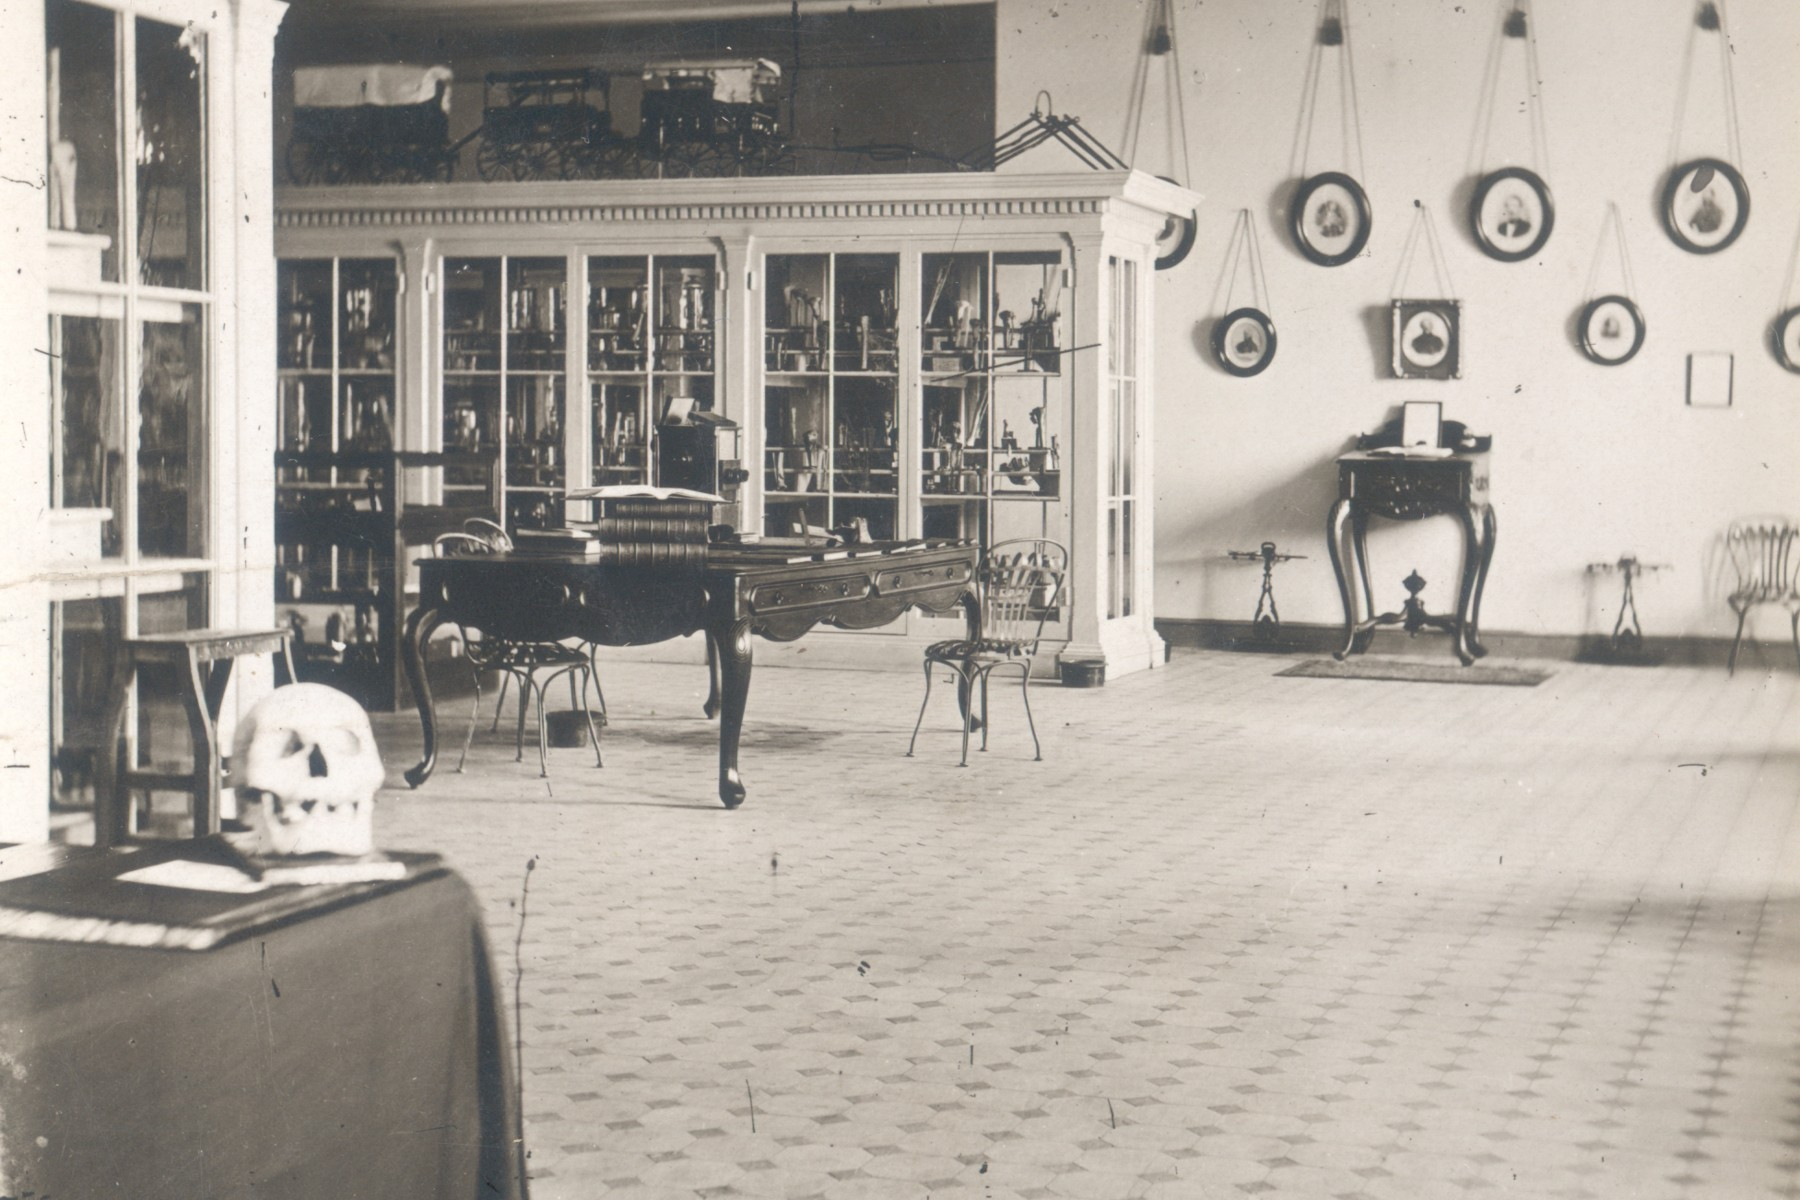 In 1867 the Army Medical Museum opened at Ford's Theatre. This black and white image shows a museum room with portraits hanging on a far wall and several central glass-windowed displace cases. The foreground of the photo features a table with a human skull on it.